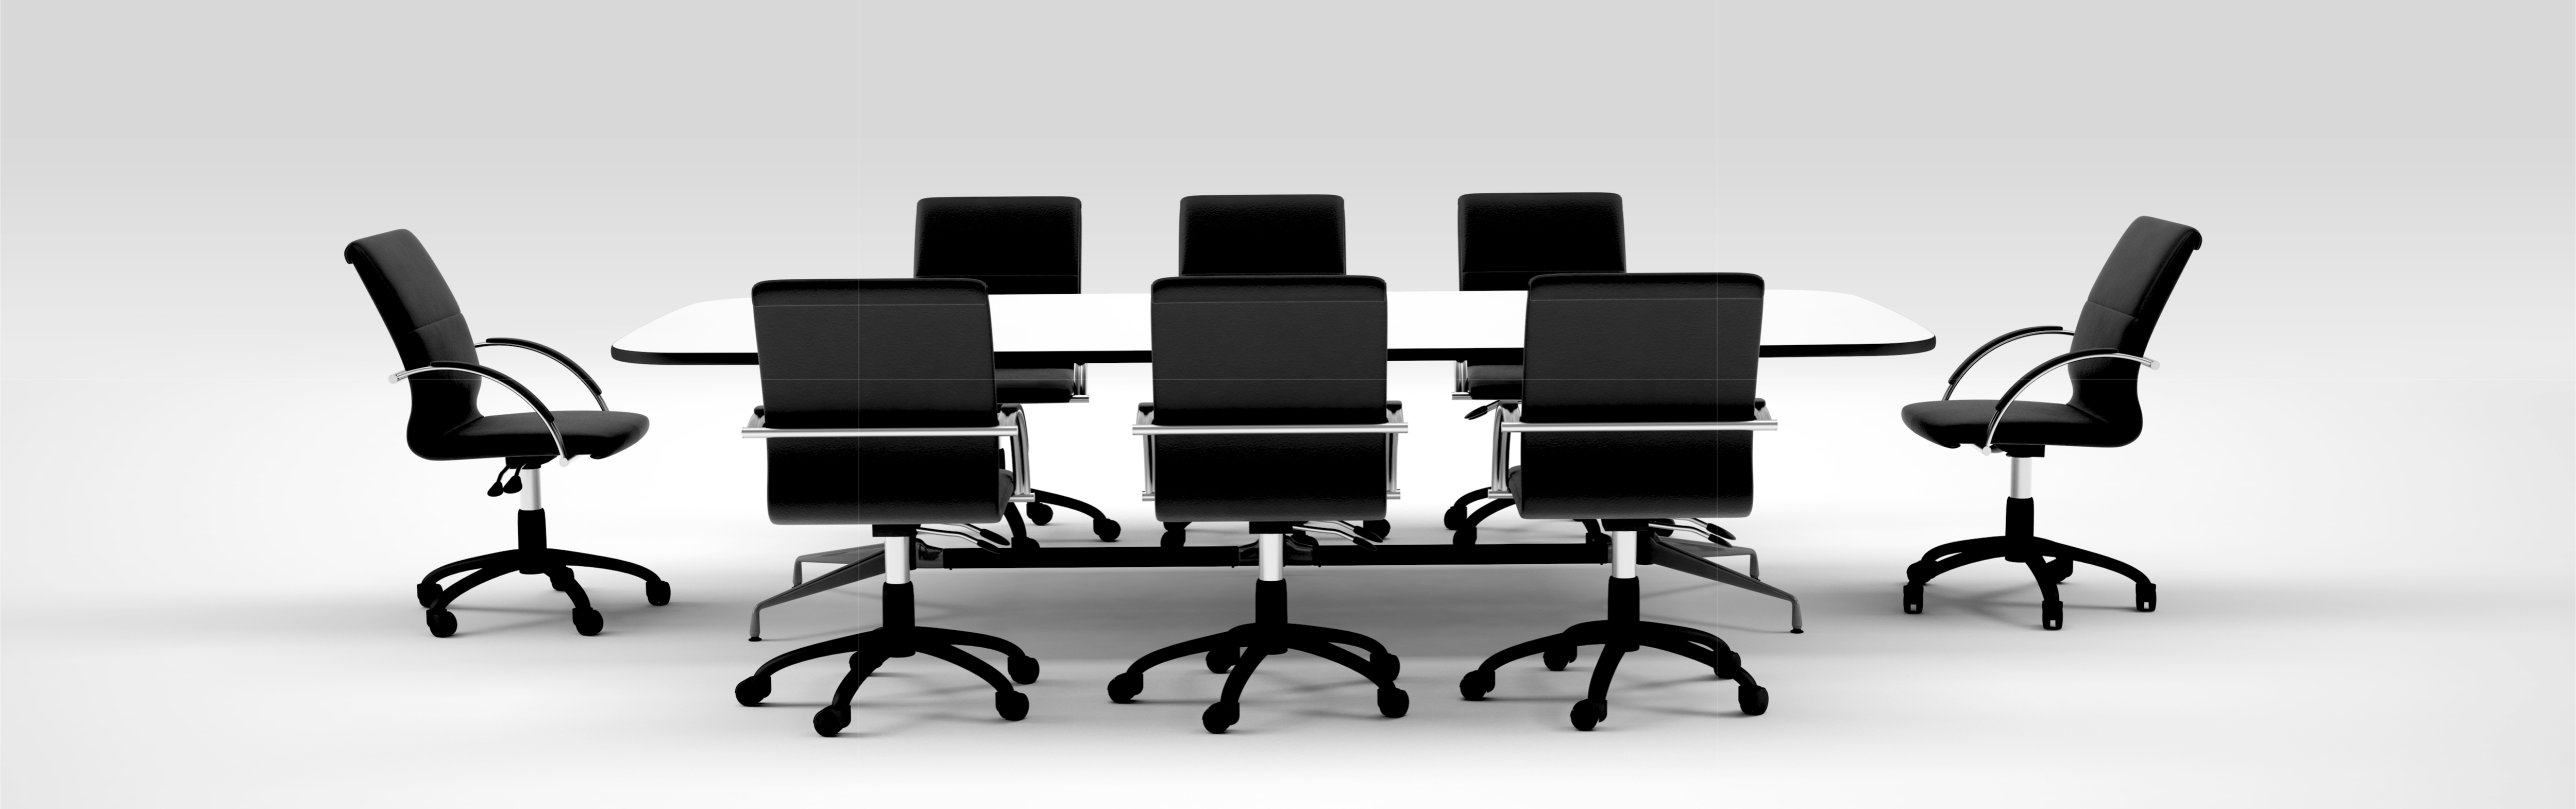 Stock Photo of Board of Directors Meeting Table